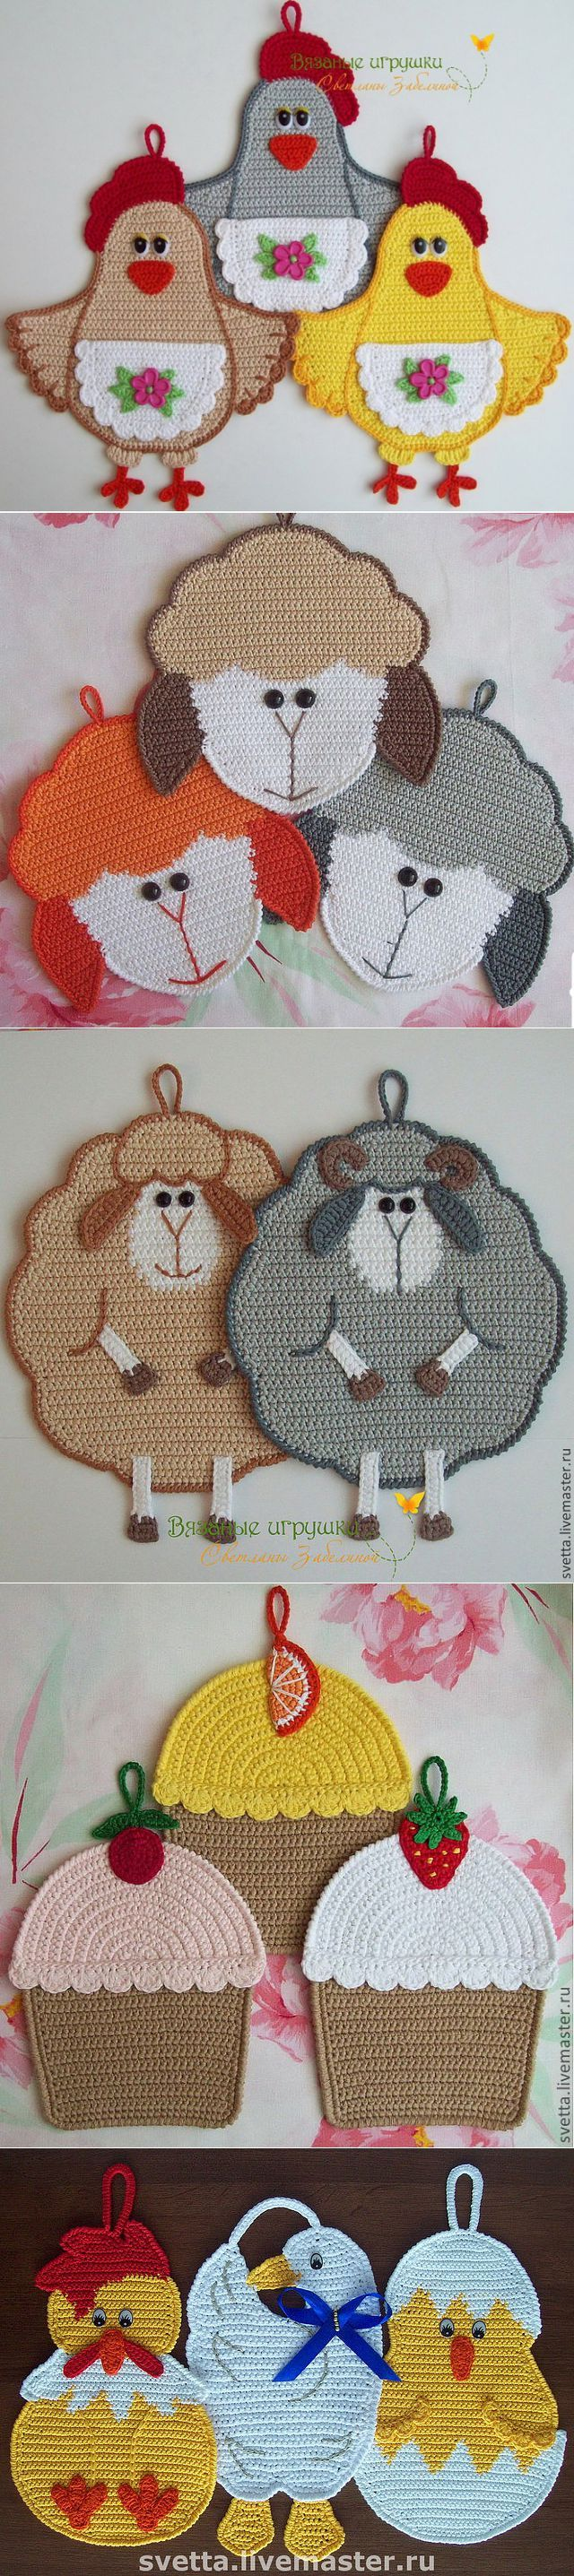 Crocheting Pot Holders : ... crochet # potholders http postila ru post 24930664 crocheted chicken